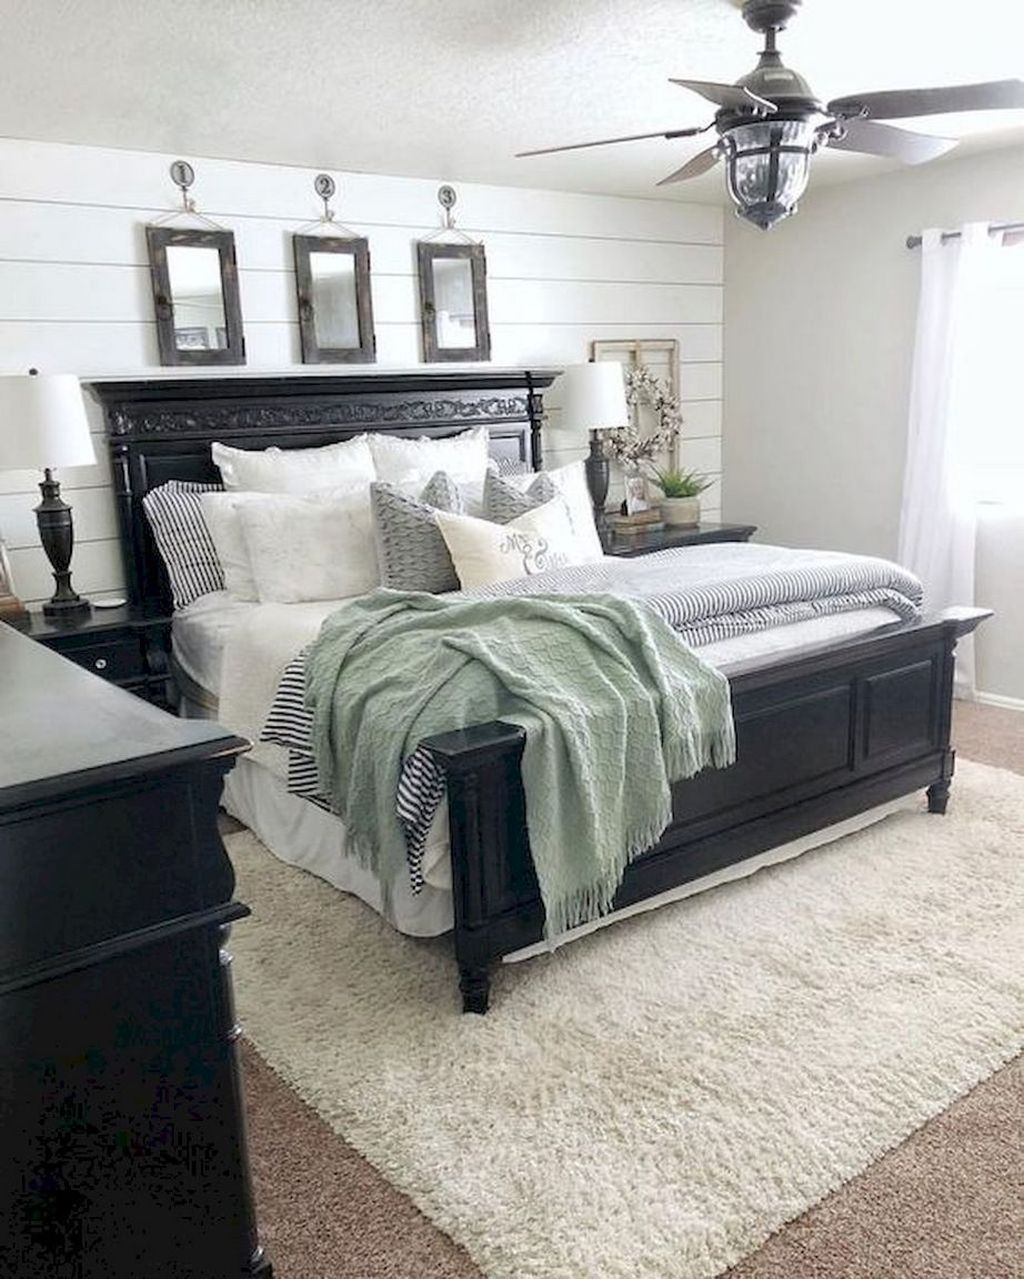 49 Smart Modern Farmhouse Style Bedroom Decor #modernfarmhousebedroom